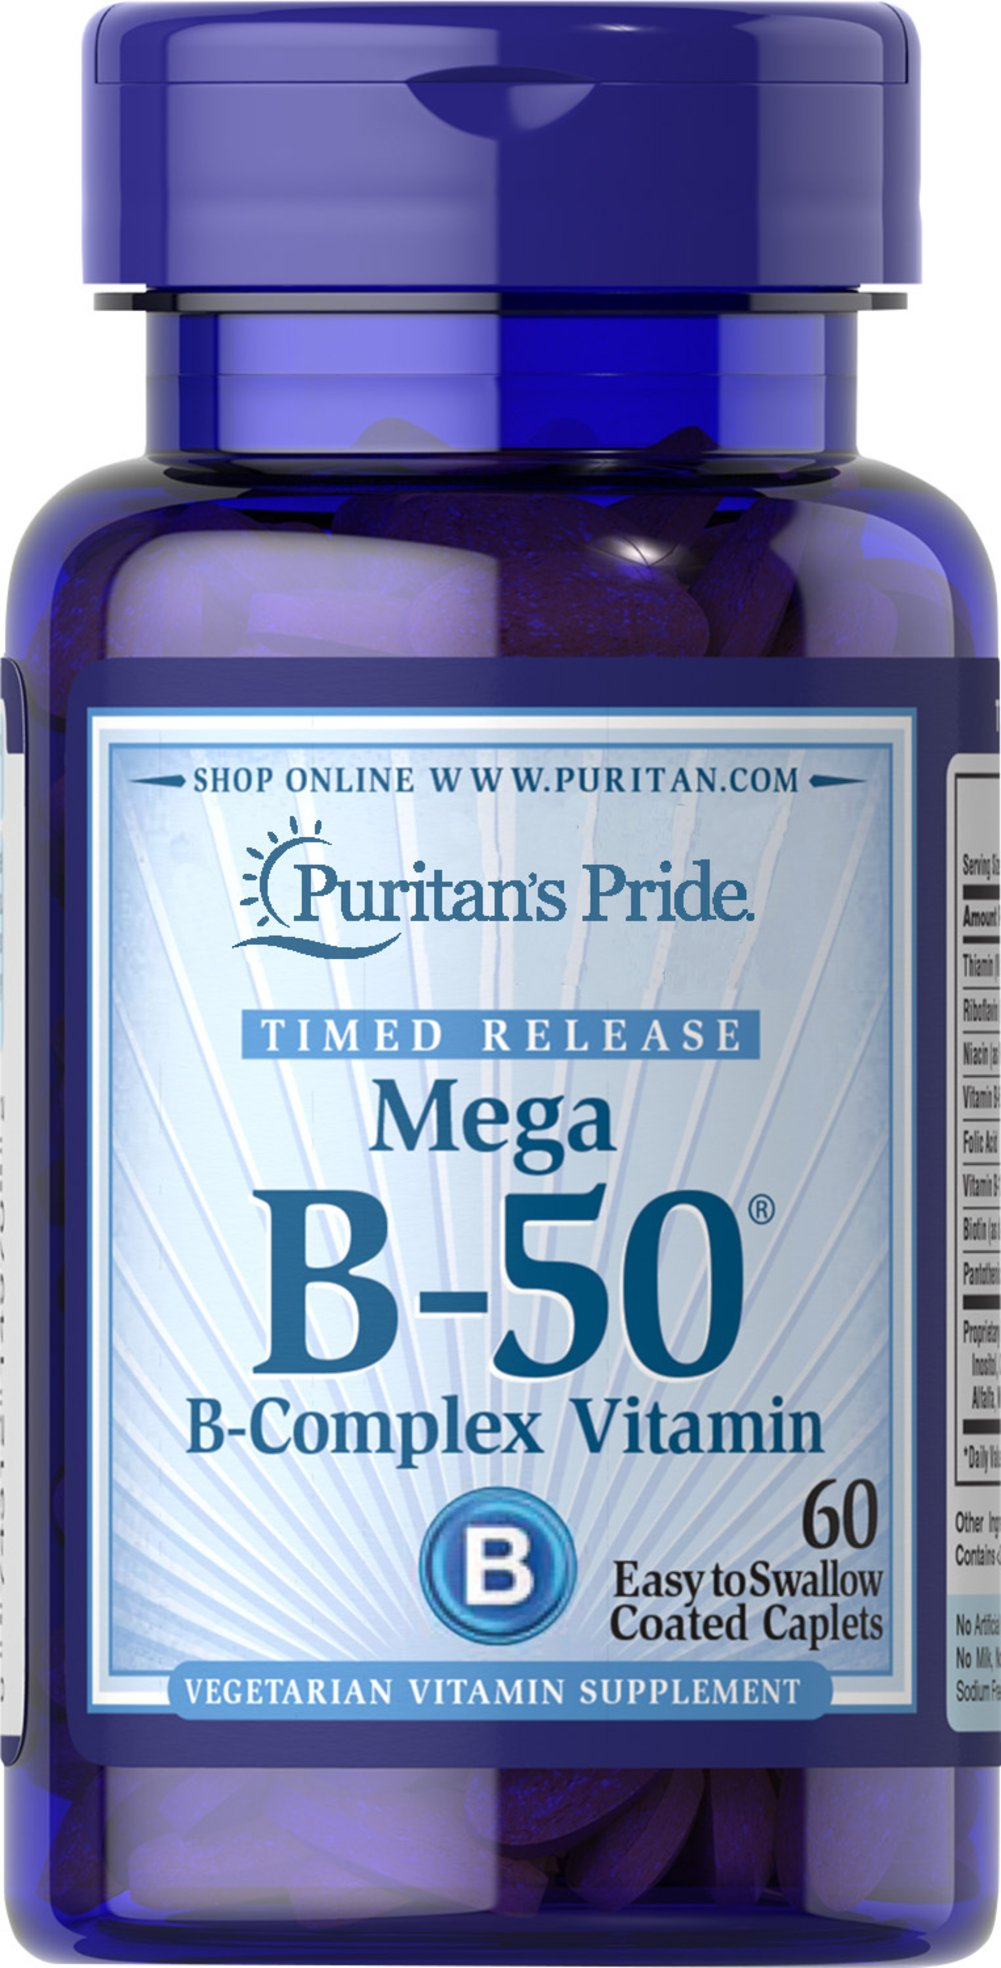 Vitamin B-50® Complex Timed Release <p>When taken together in a Vitamin B-50® complex formula, the B-Vitamins help to maintain the health of the nerves, skin, eyes and hair.** Each tablet is time released to provide a steady flow of B-Complex to your body.</p><p>Each serving delivers Thiamin, Riboflavin, Niacin, B-6, B-12, Biotin, Folic Acid, Pantothenic Acid and a Proprietary Blend.</p> 60 Tablets 50 mg $10.38